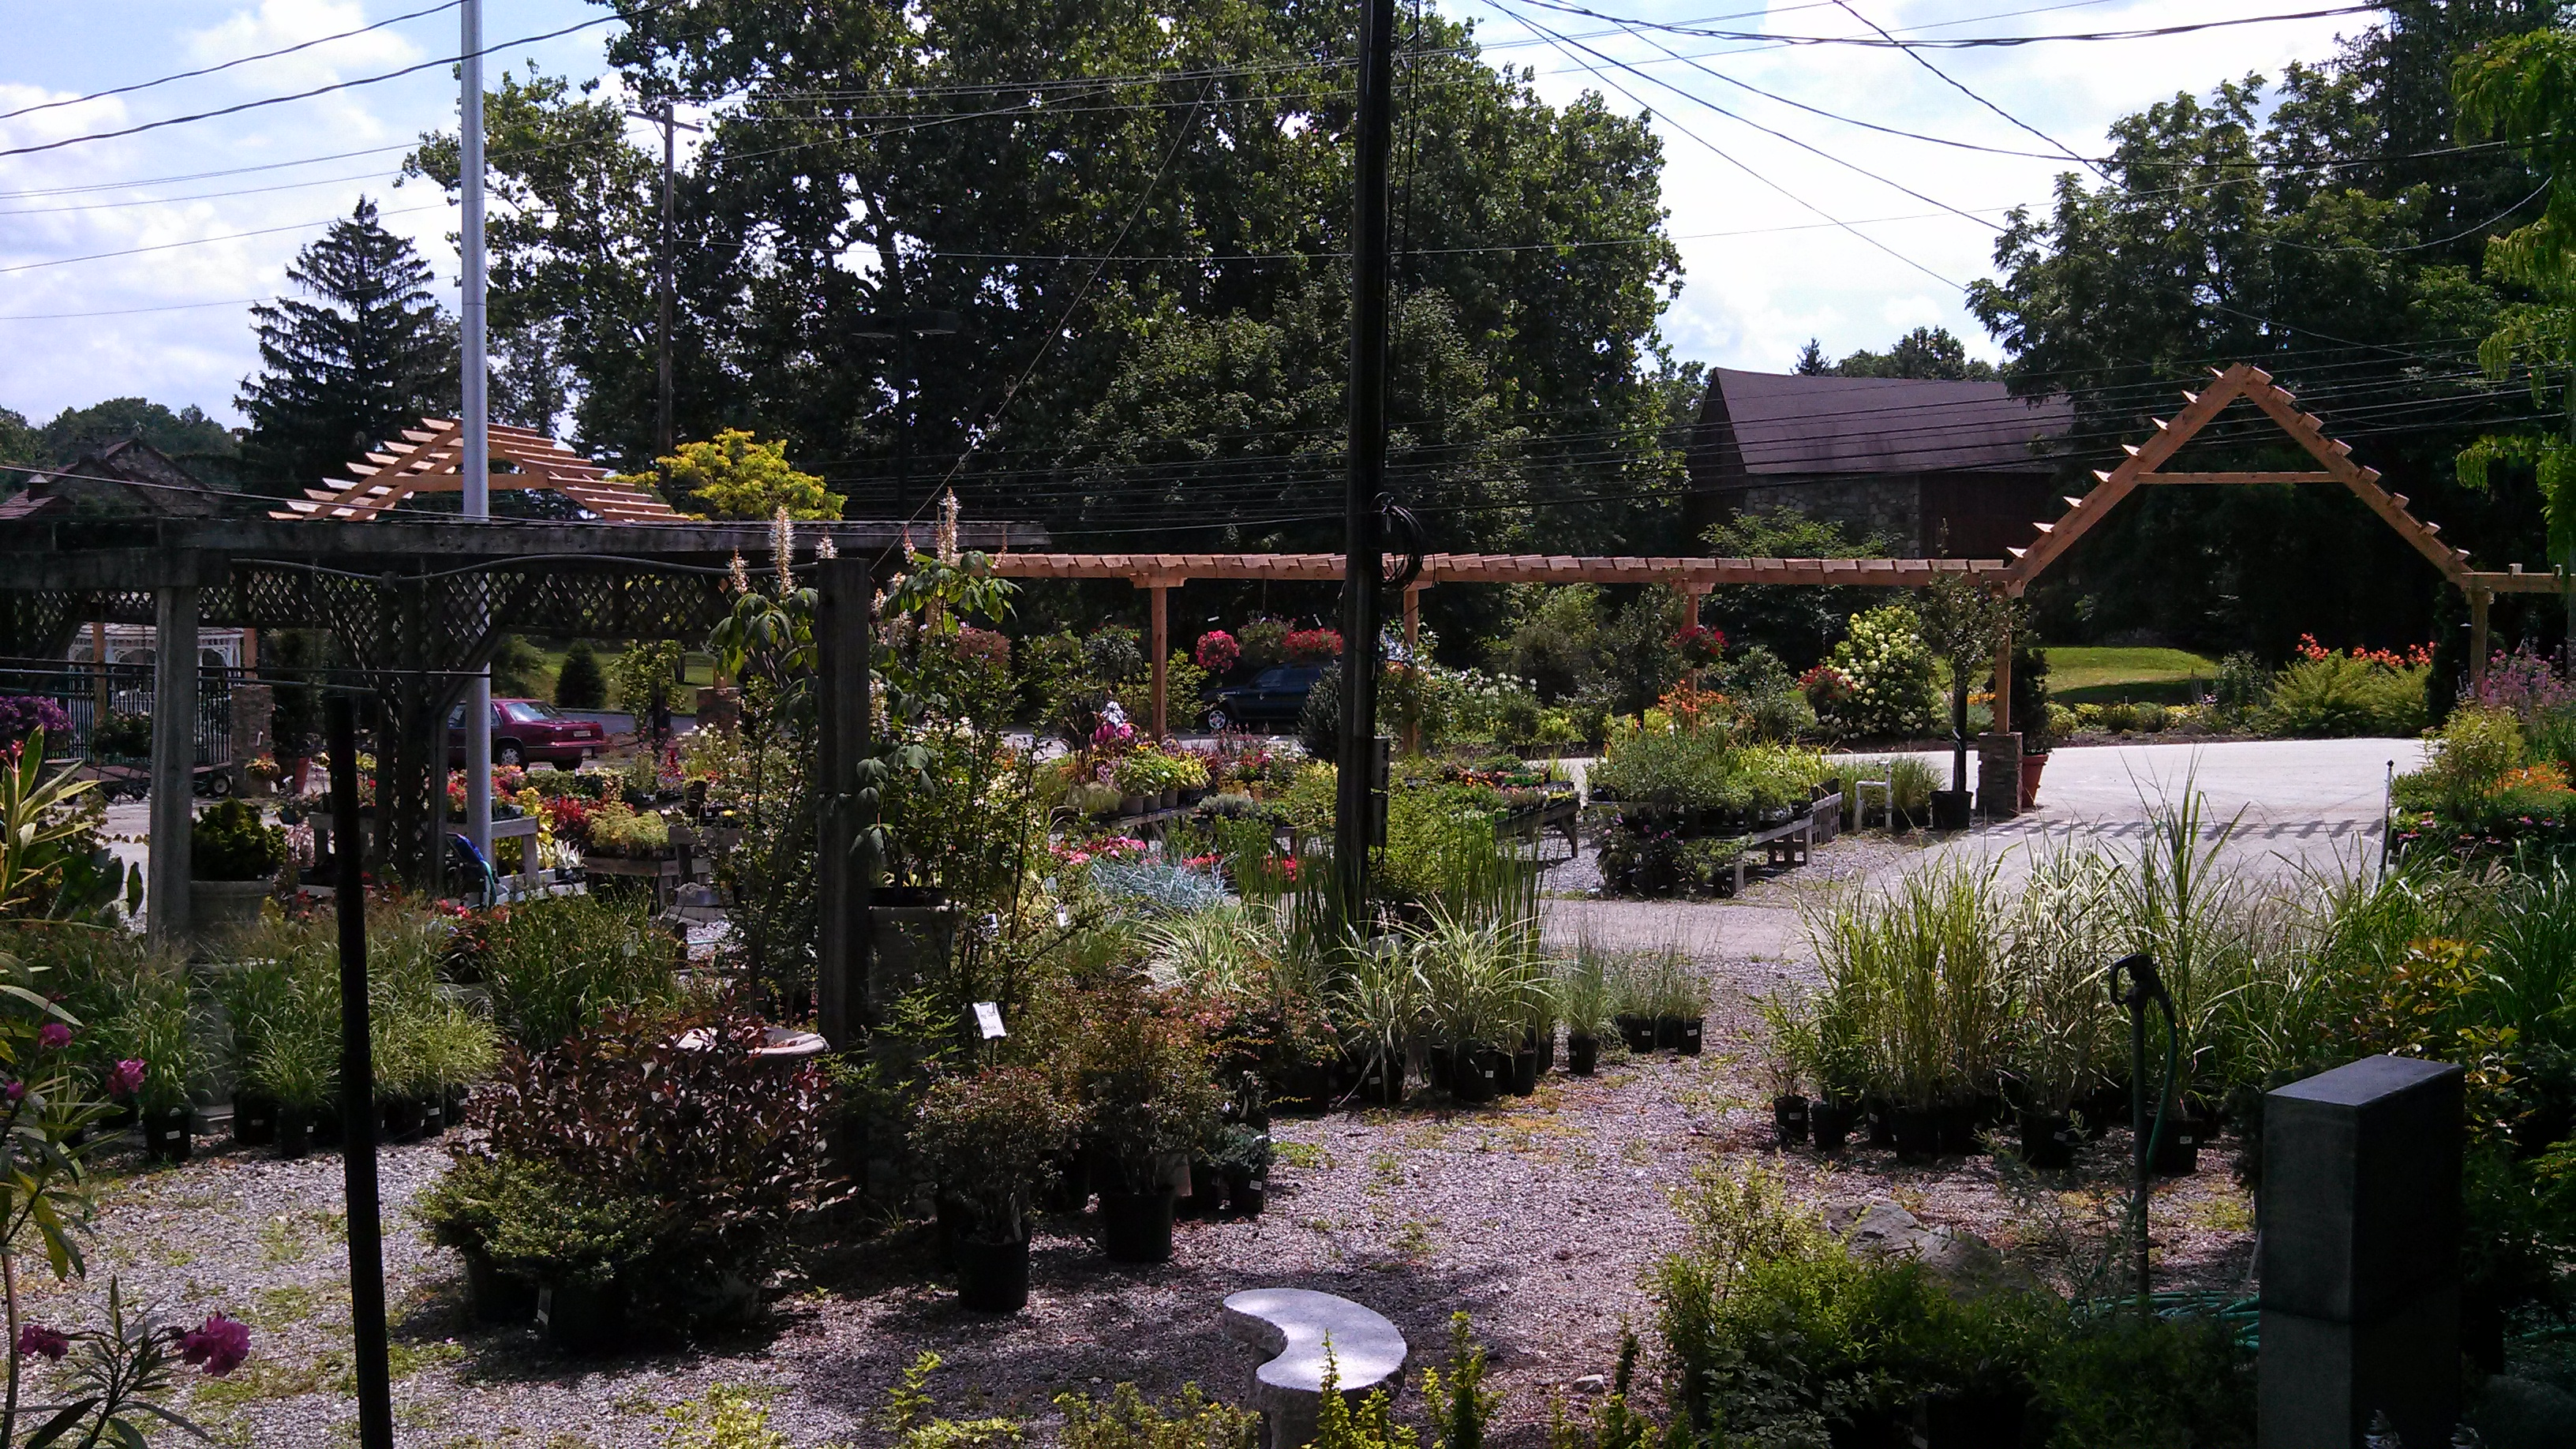 Woodlawn Landscaping & Nursery in Malvern